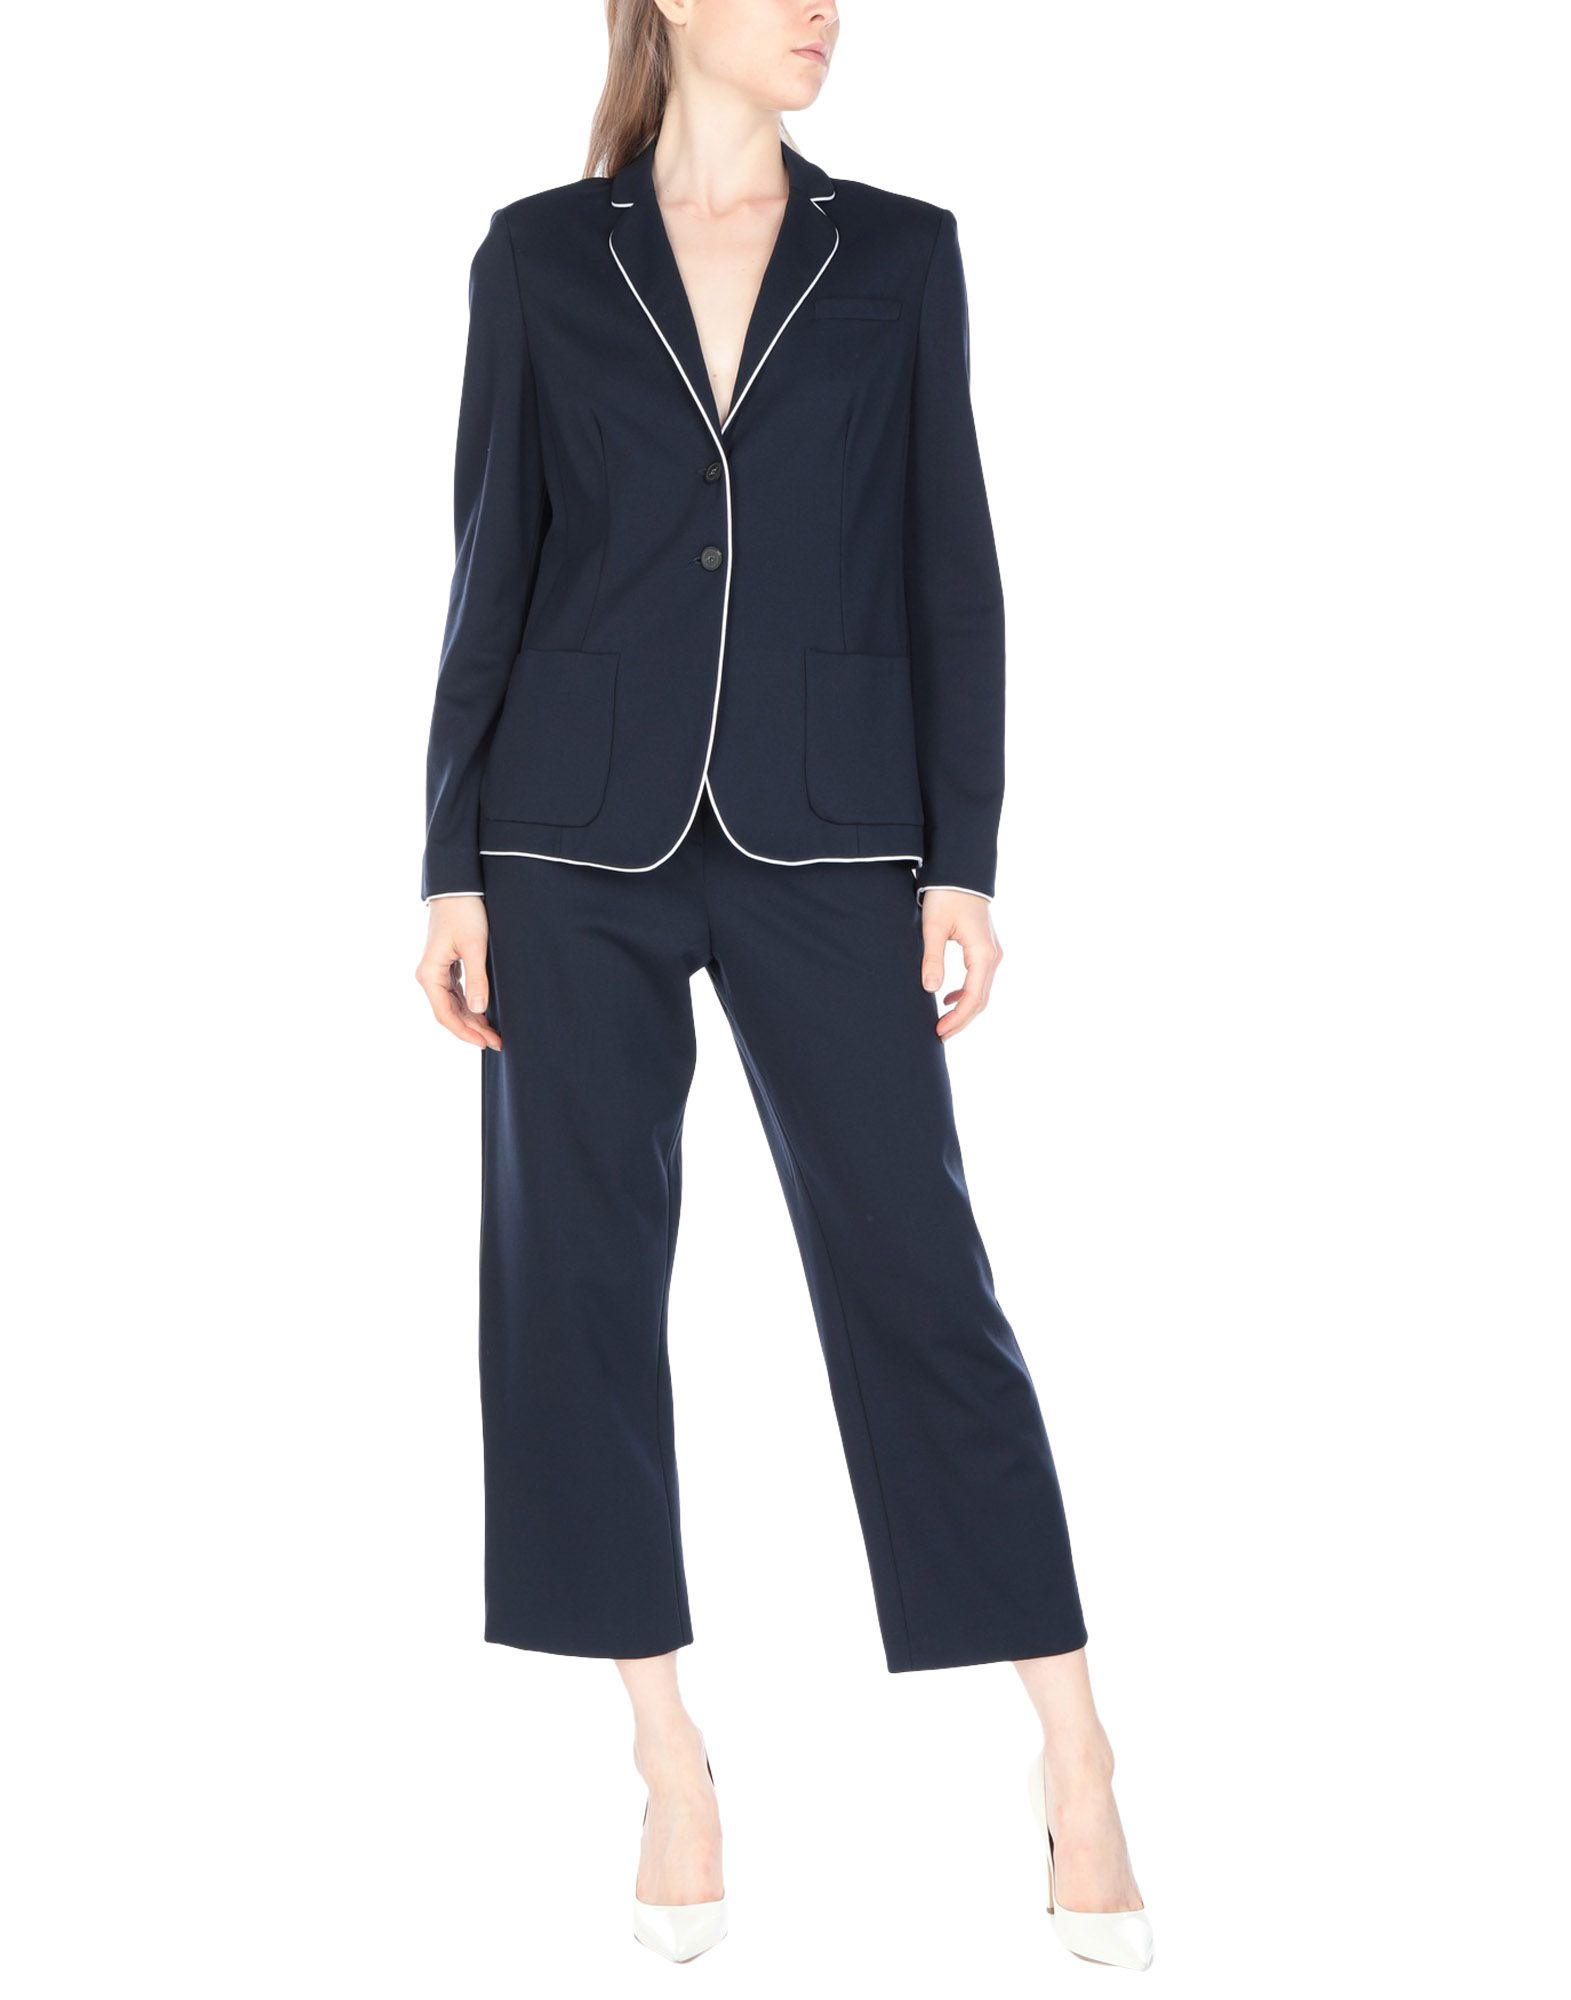 fe10c458de9 Armani Collezioni Women s Suits - Spring-Summer and Fall-Winter Collections